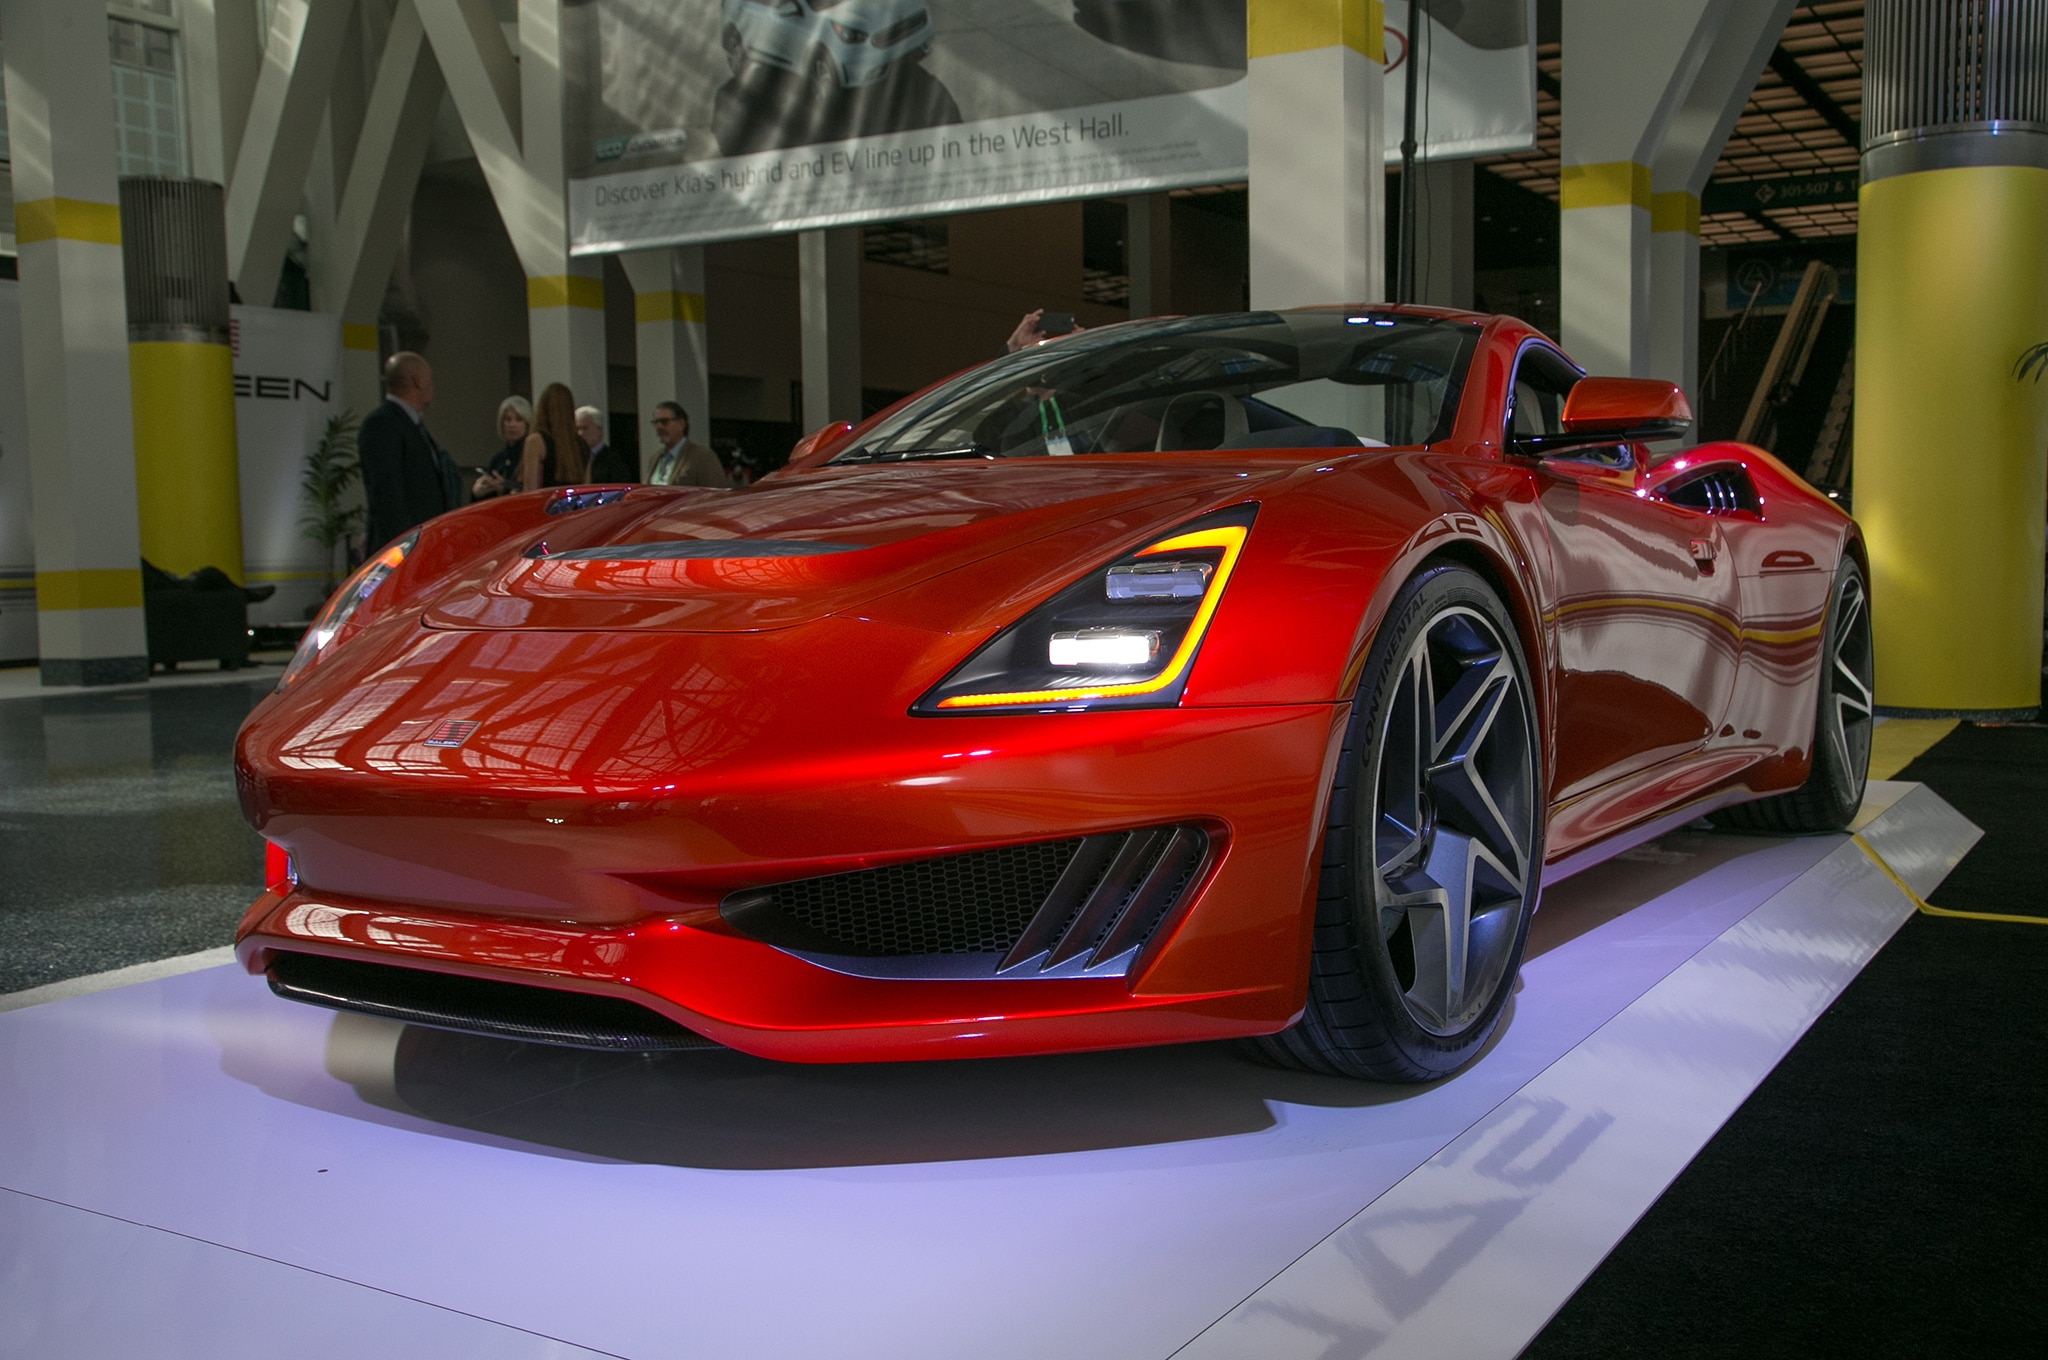 Mustang Gt 0 60 >> 2019 Saleen 1 Unveiled with a $100,000 Price Tag ...